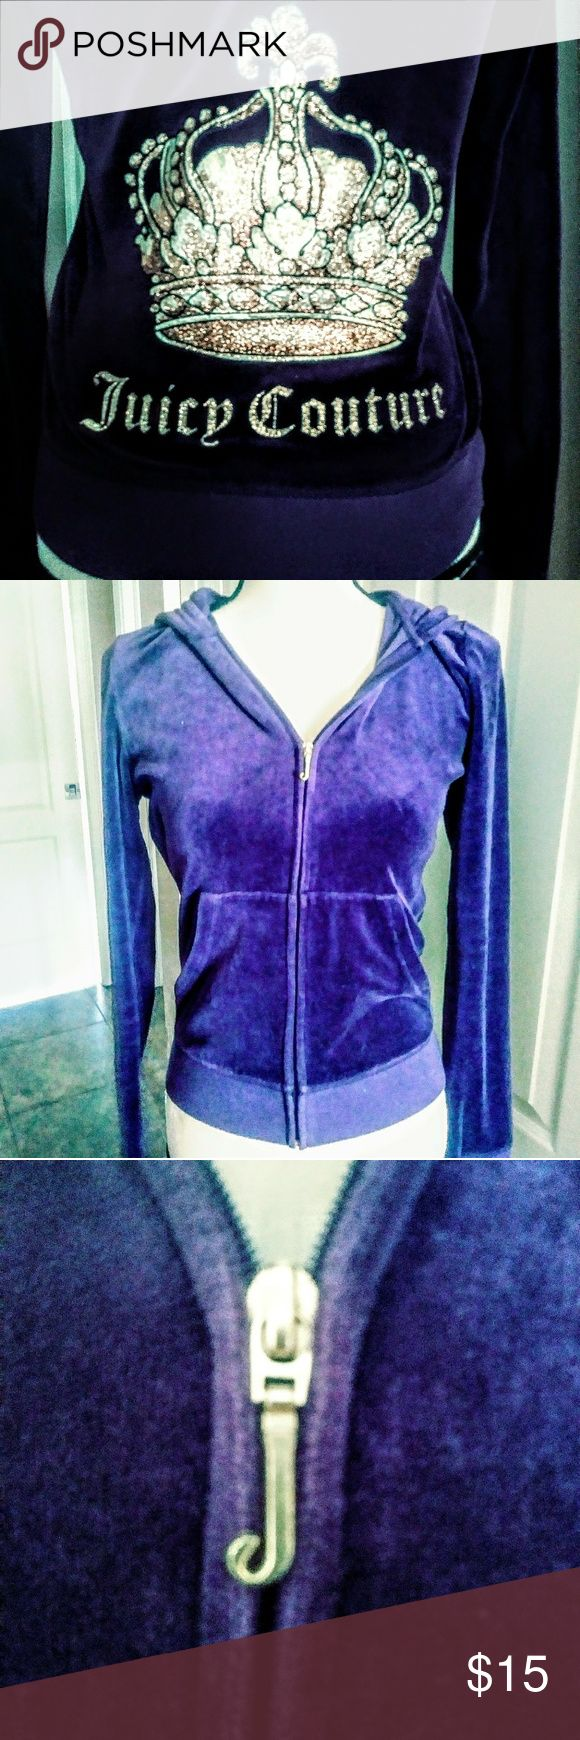 Juicy Couture Purple Zip up Hoodie Sweatswirt Sz M Juicy Couture Purple Zip up Hooded Sweatshirt. In excellent pre-owned condition! Juicy Couture Tops Sweatshirts & Hoodies